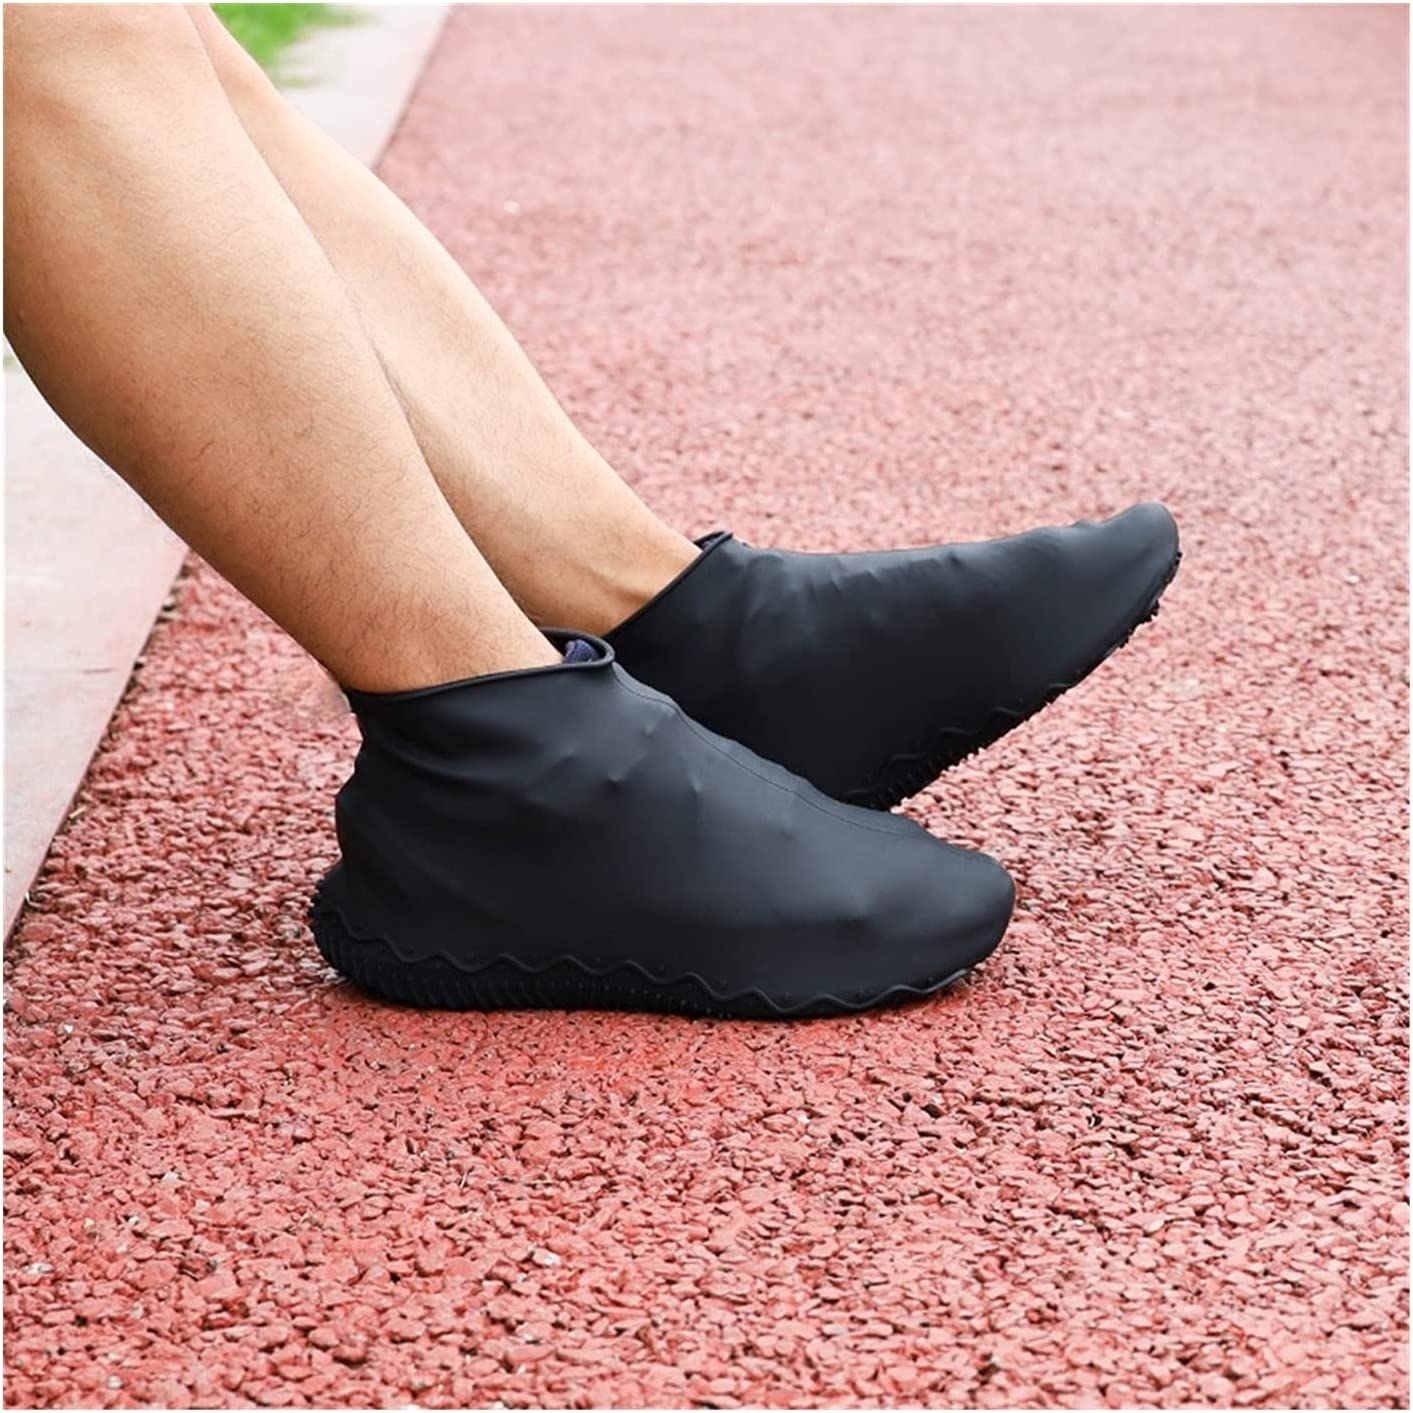 ZQDMBH Shoes Albuquerque Mall Cover Thicken Silicone Fort Worth Mall Shoe Waterproof C Boots Rain